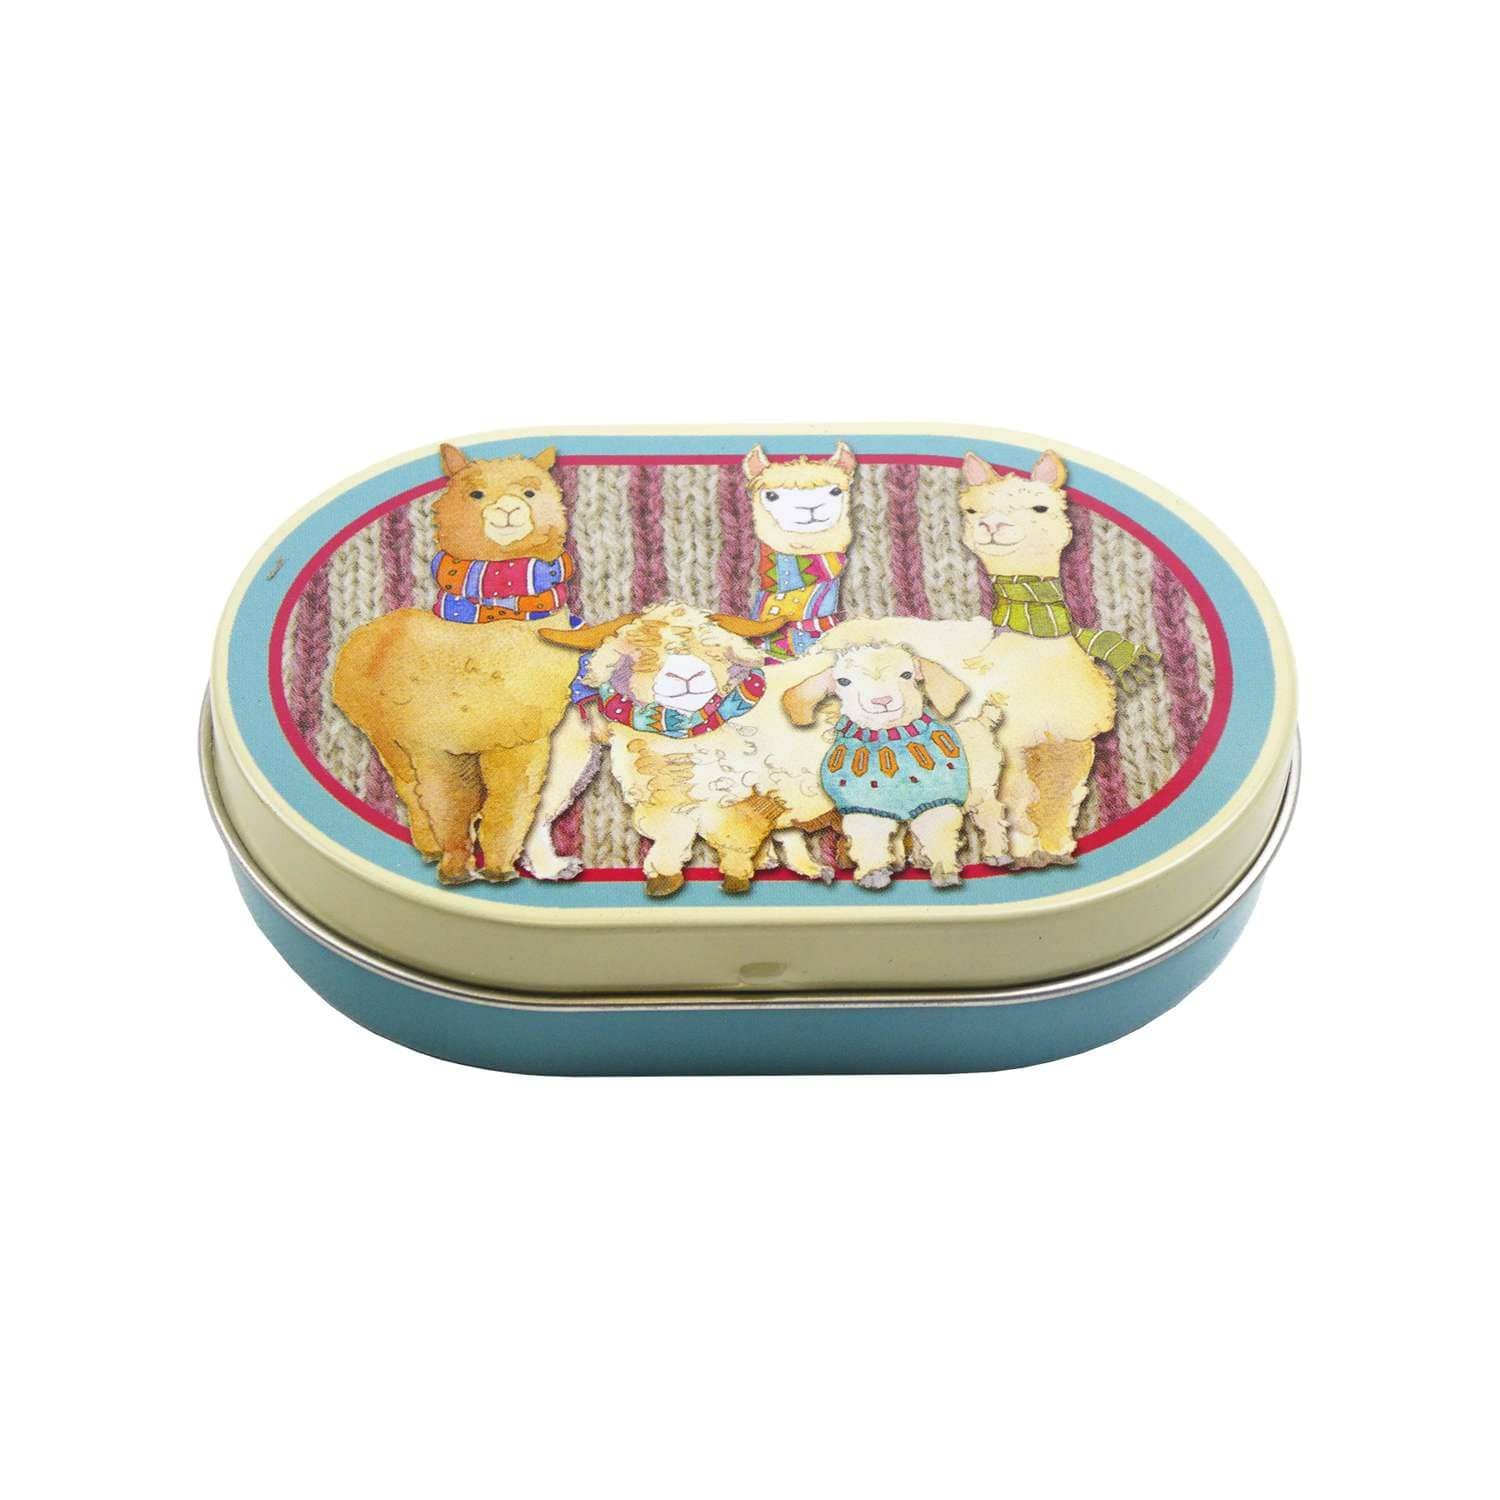 Emma Ball - Other Woollies Mini Hinged Oval Tin | Yarn Worx